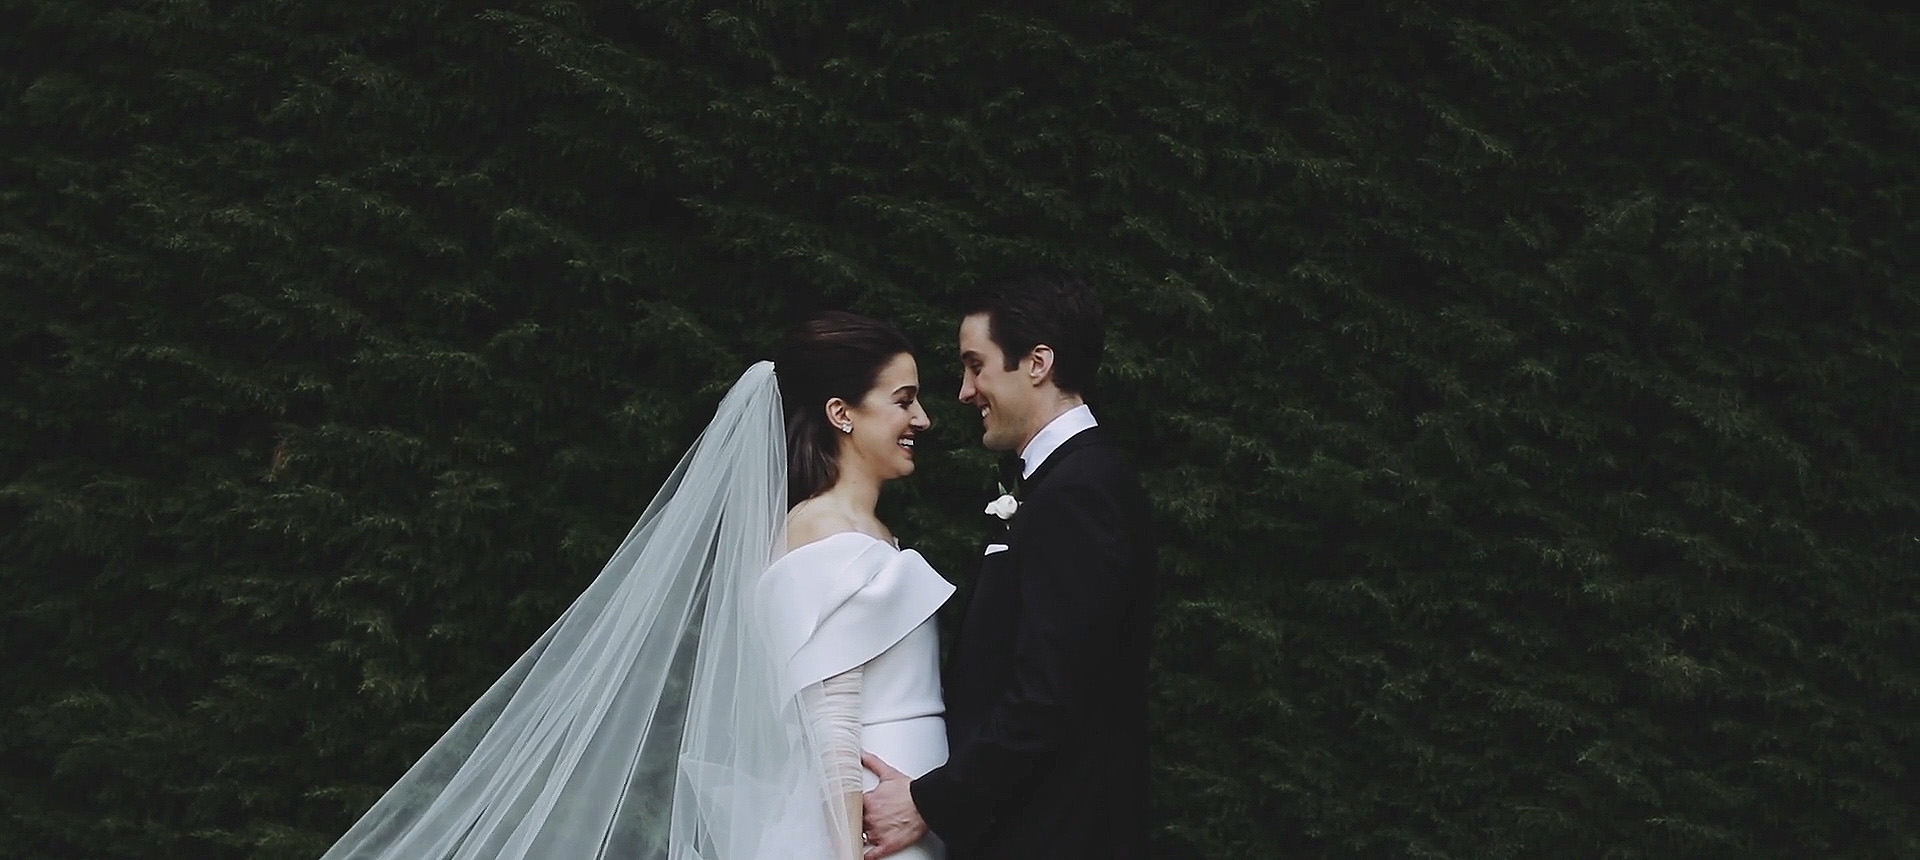 Annette-and-Dani-Films-Zoe and Daniel-wedding-video.jpg